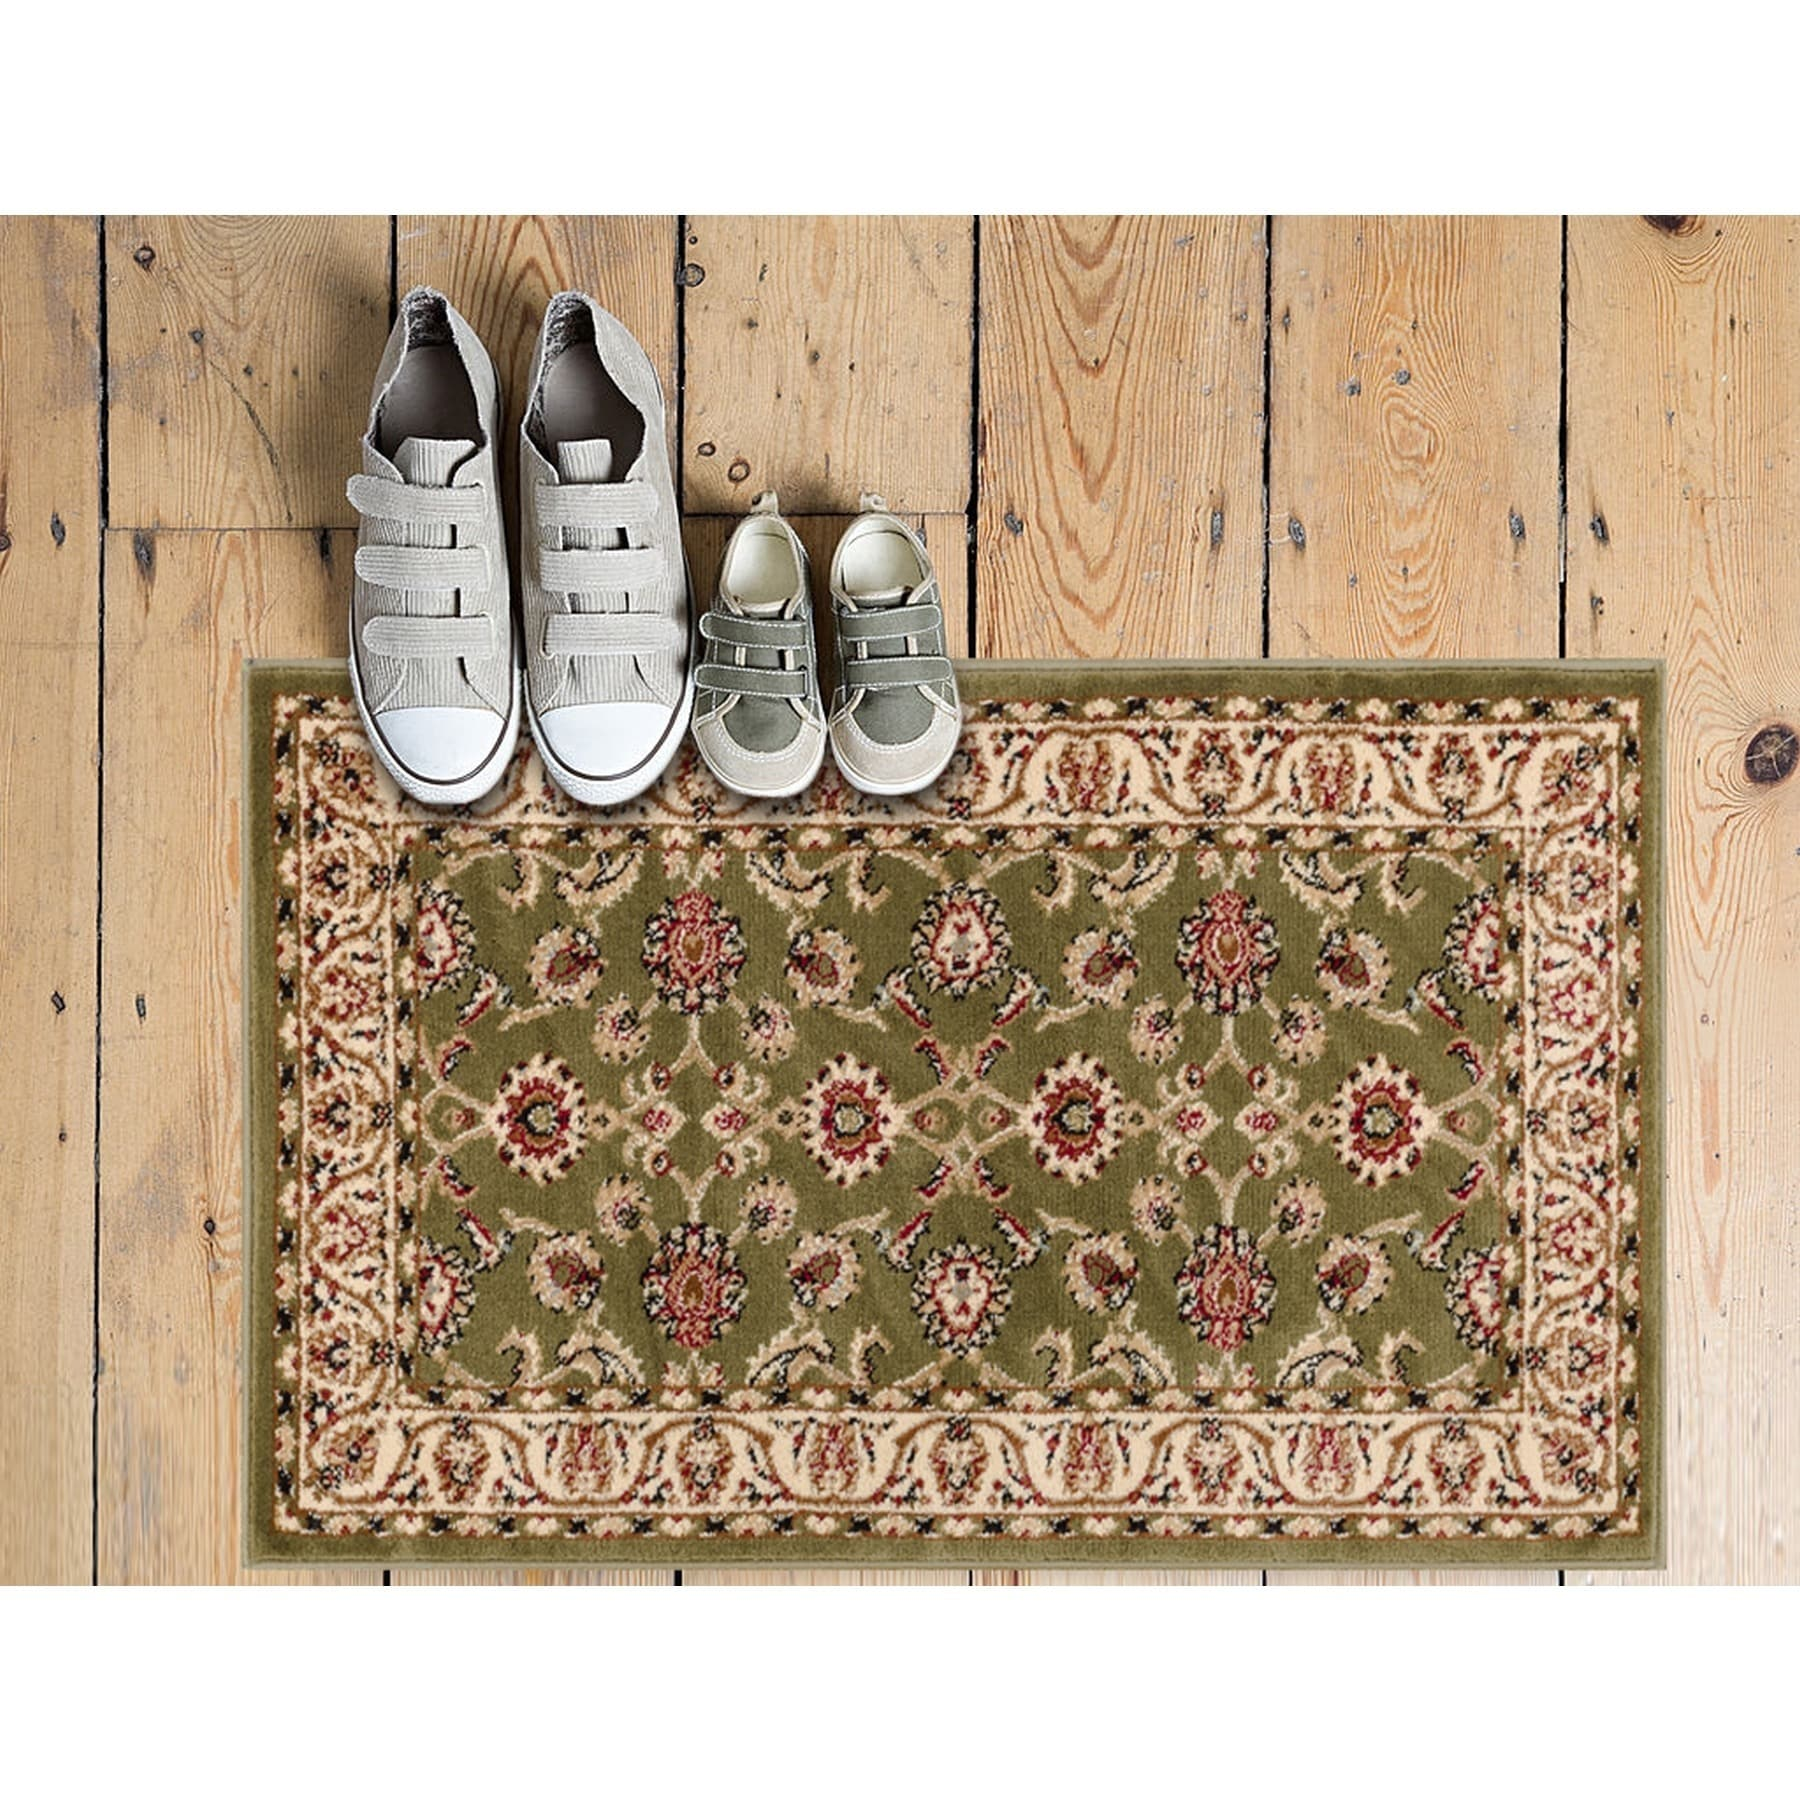 Well Woven Ariana Palace Green Rug (2'3 x 3'11), Multi, S...